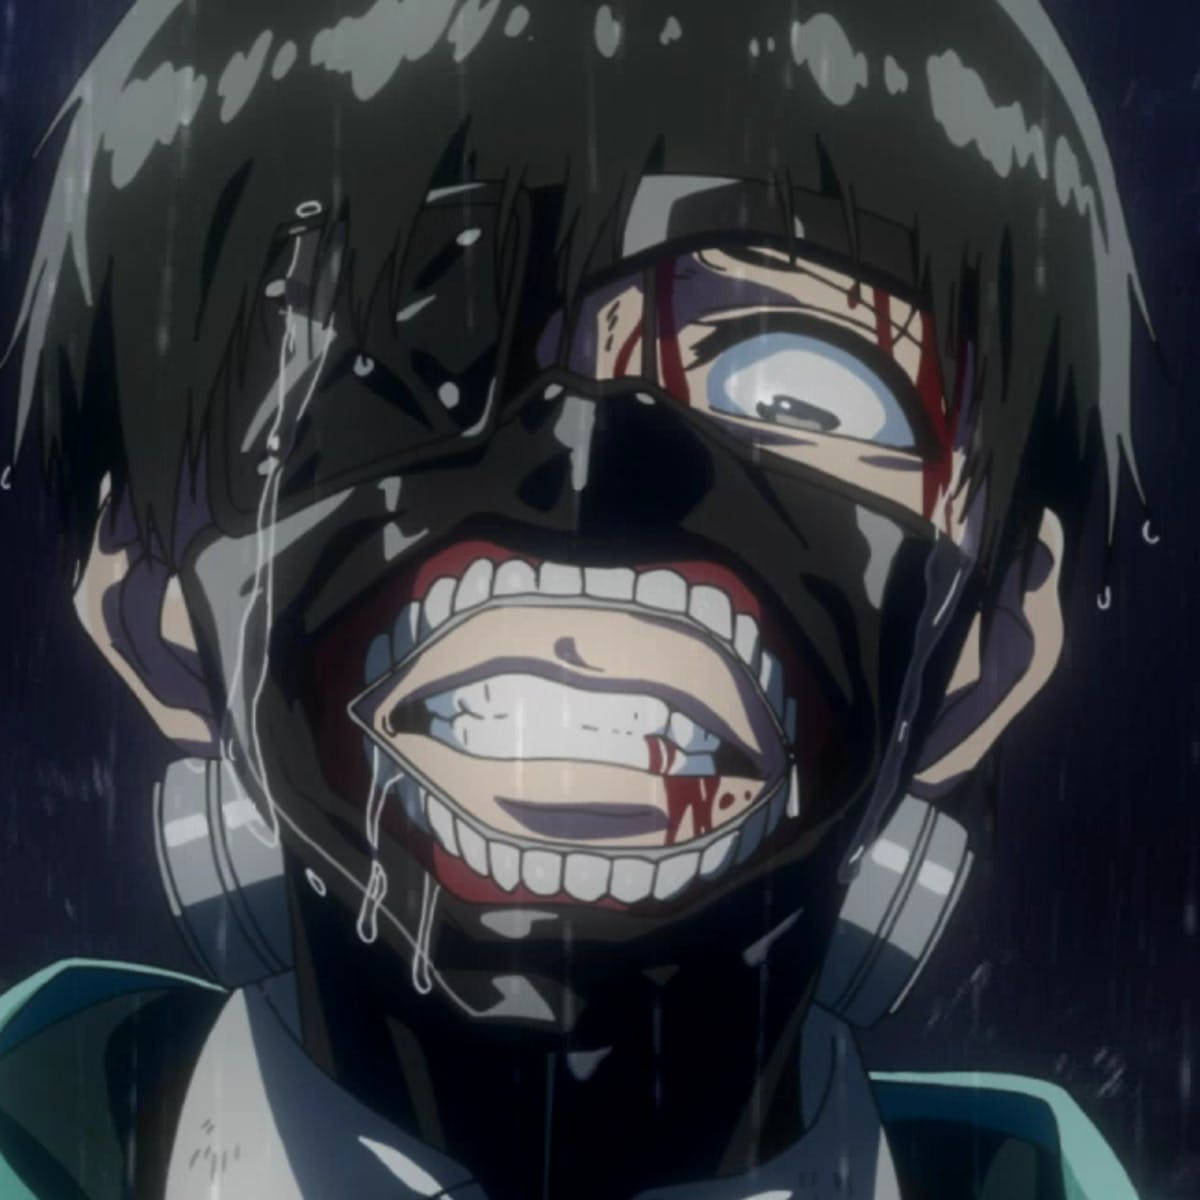 How to Watch 'Tokyo Ghoul' Before Season 3 | Inverse